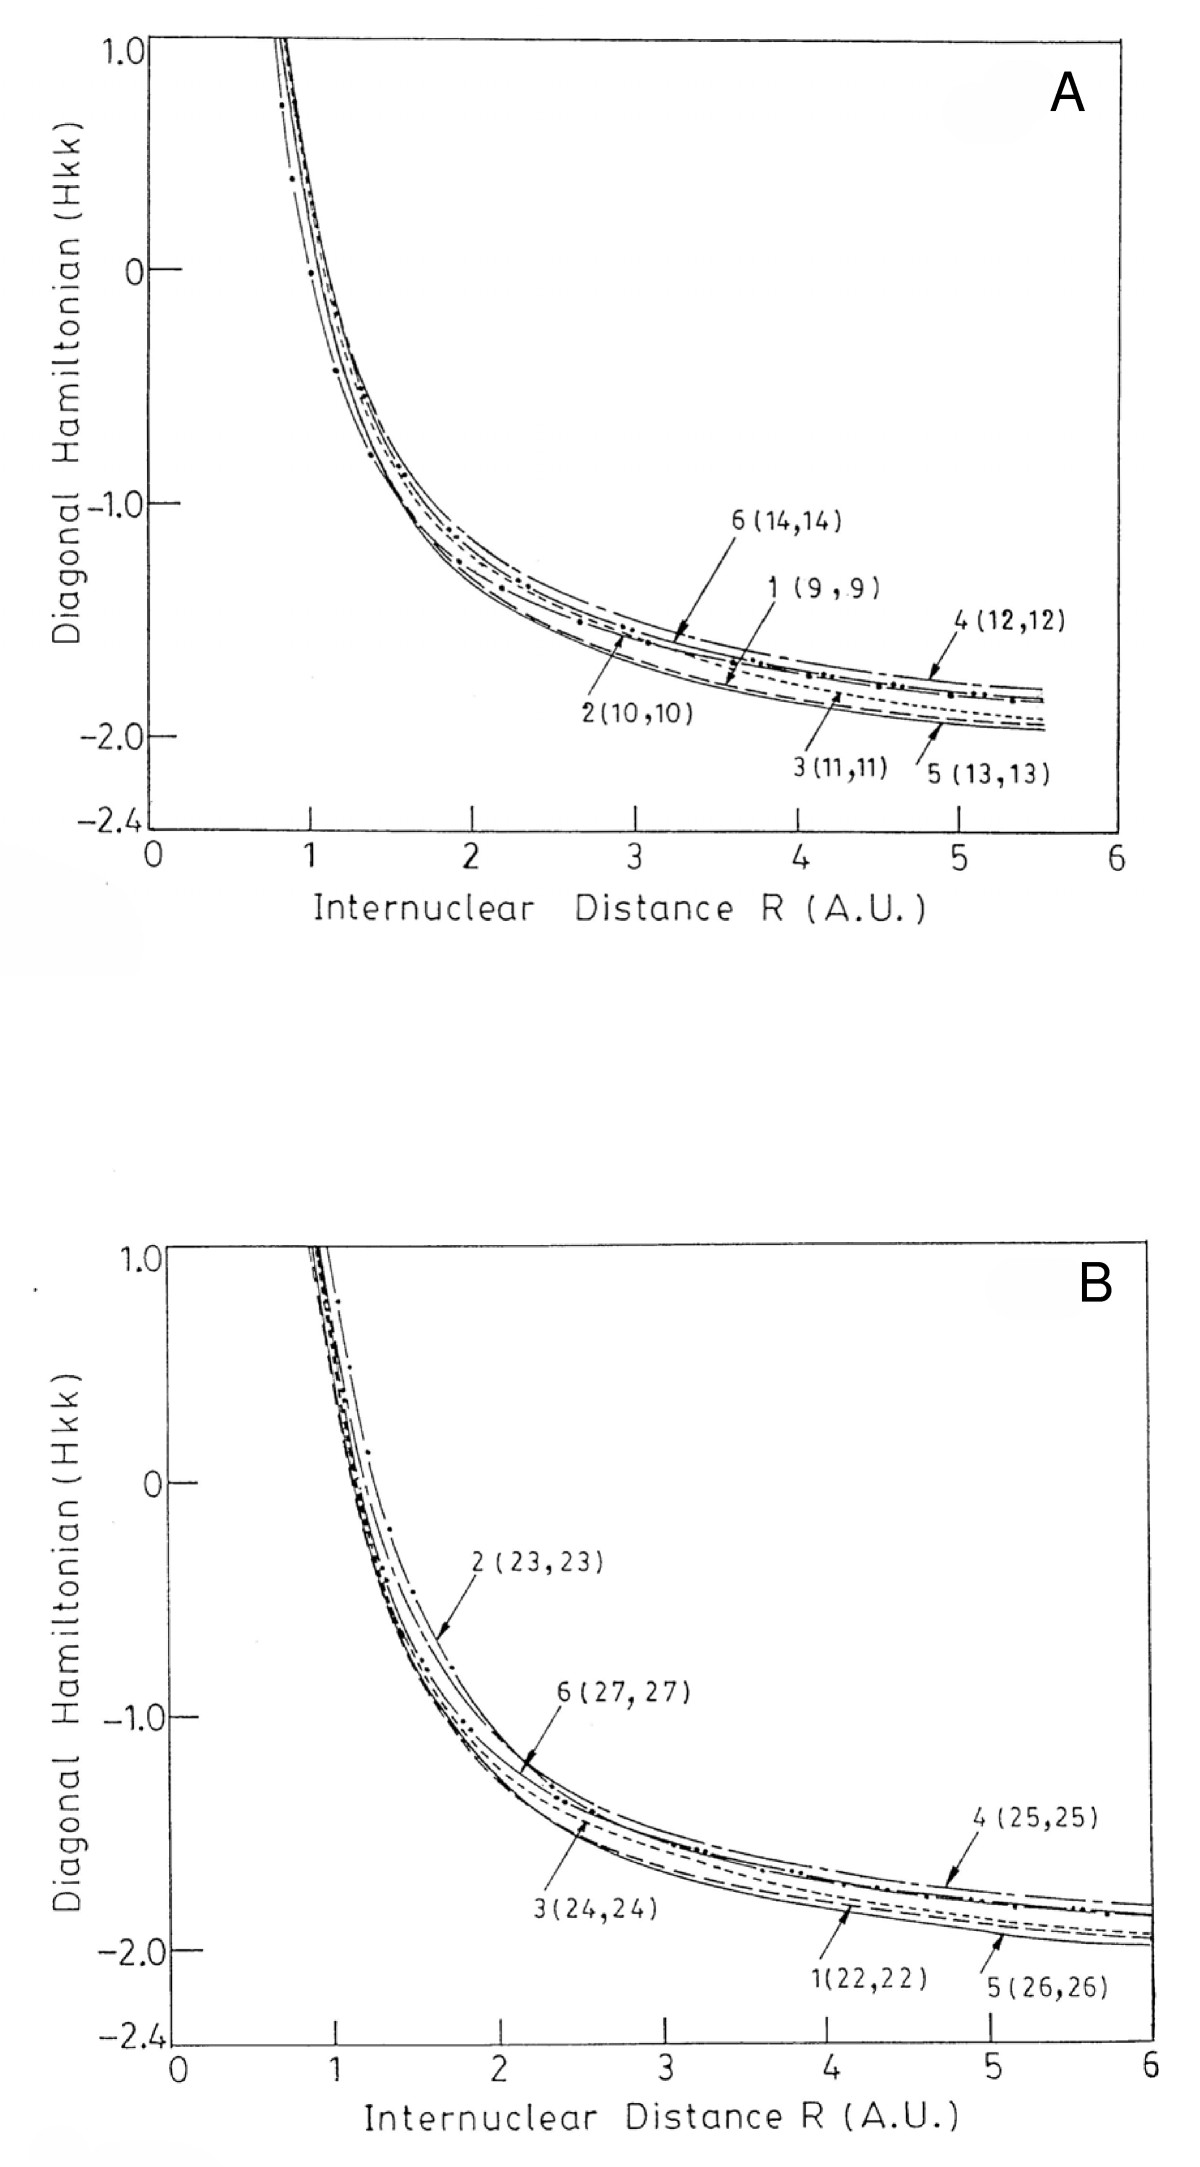 http://static-content.springer.com/image/art%3A10.1186%2F1754-0429-2-2/MediaObjects/13067_2009_Article_22_Fig1_HTML.jpg